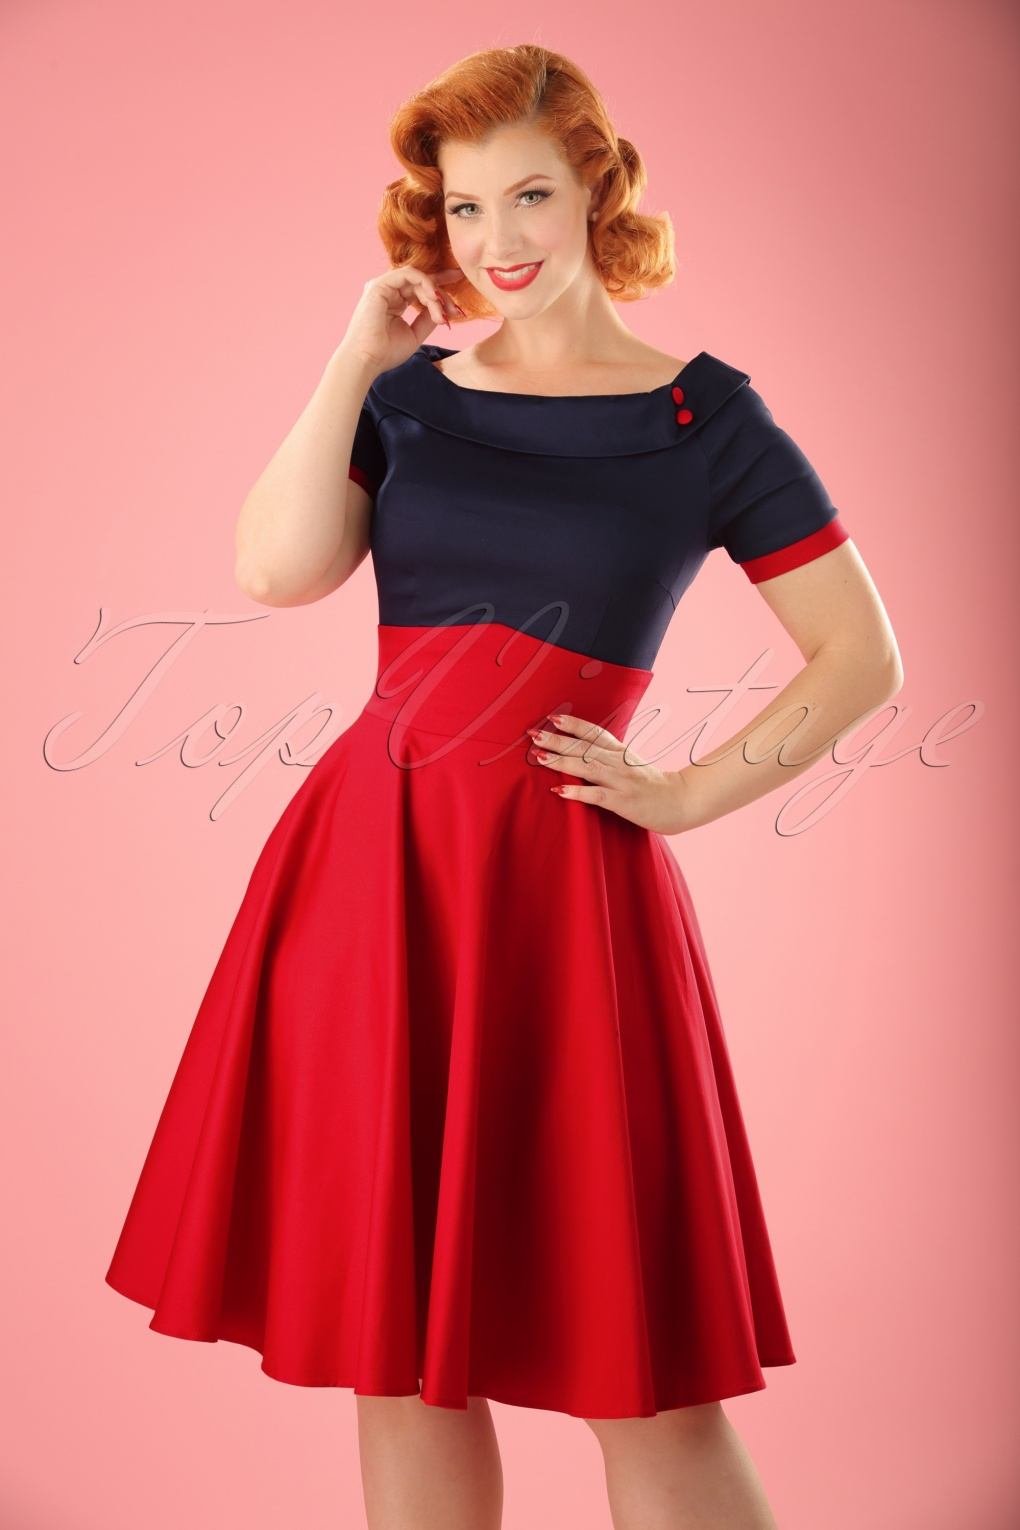 1940s Pinup Dresses for Sale 50s Darlene Swing Dress in Navy and Red £45.45 AT vintagedancer.com